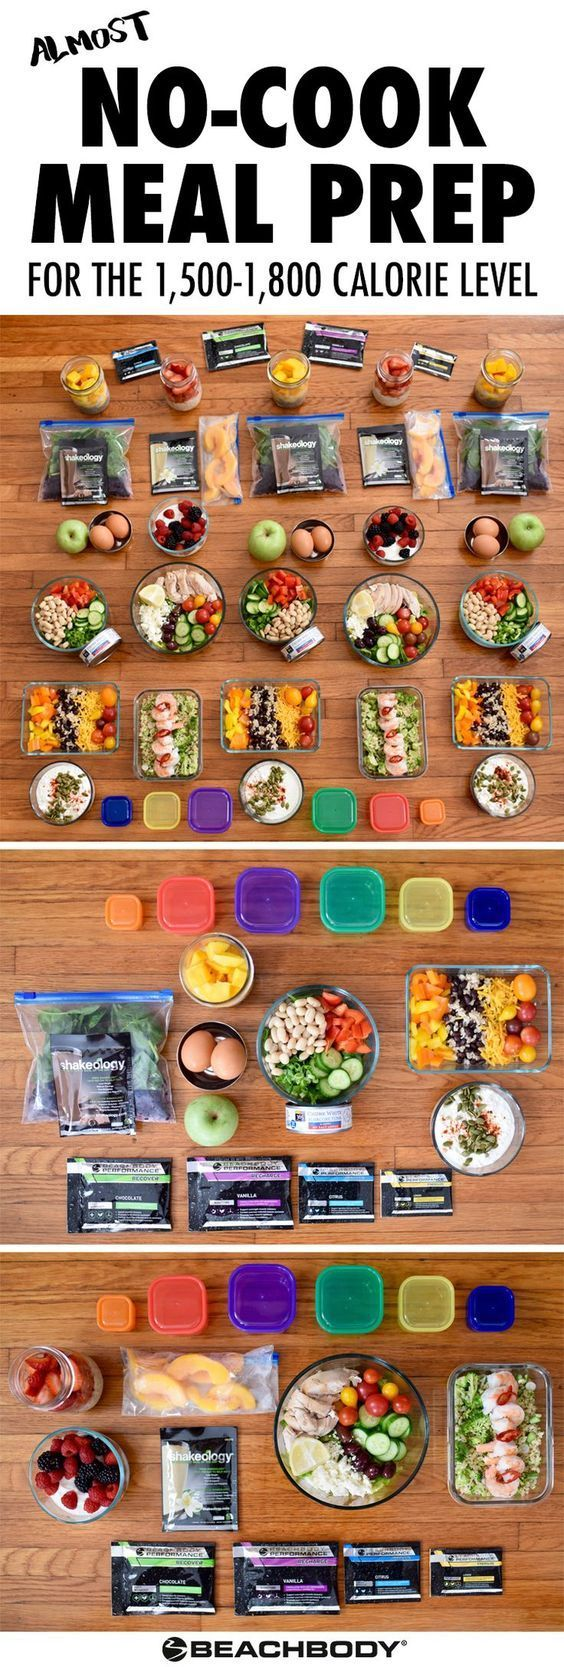 If you're in for some busy weeks ahead, make sure you've got your clean eating covered with this *almost* no-cook meal prep. It follows the Portion Fix eating plan at the 1,500–1,800 calorie level. Super easy, super fast, super healthy! // recipes // clean eating // no cook // meal prep // meal prepping // meal planning // meal plans // healthy // ideas // weight loss // easy // simple // motivation // containers // 21 Day Fix // Autumn Calabrese // Beachbody // http://BeachbodyBlog.com